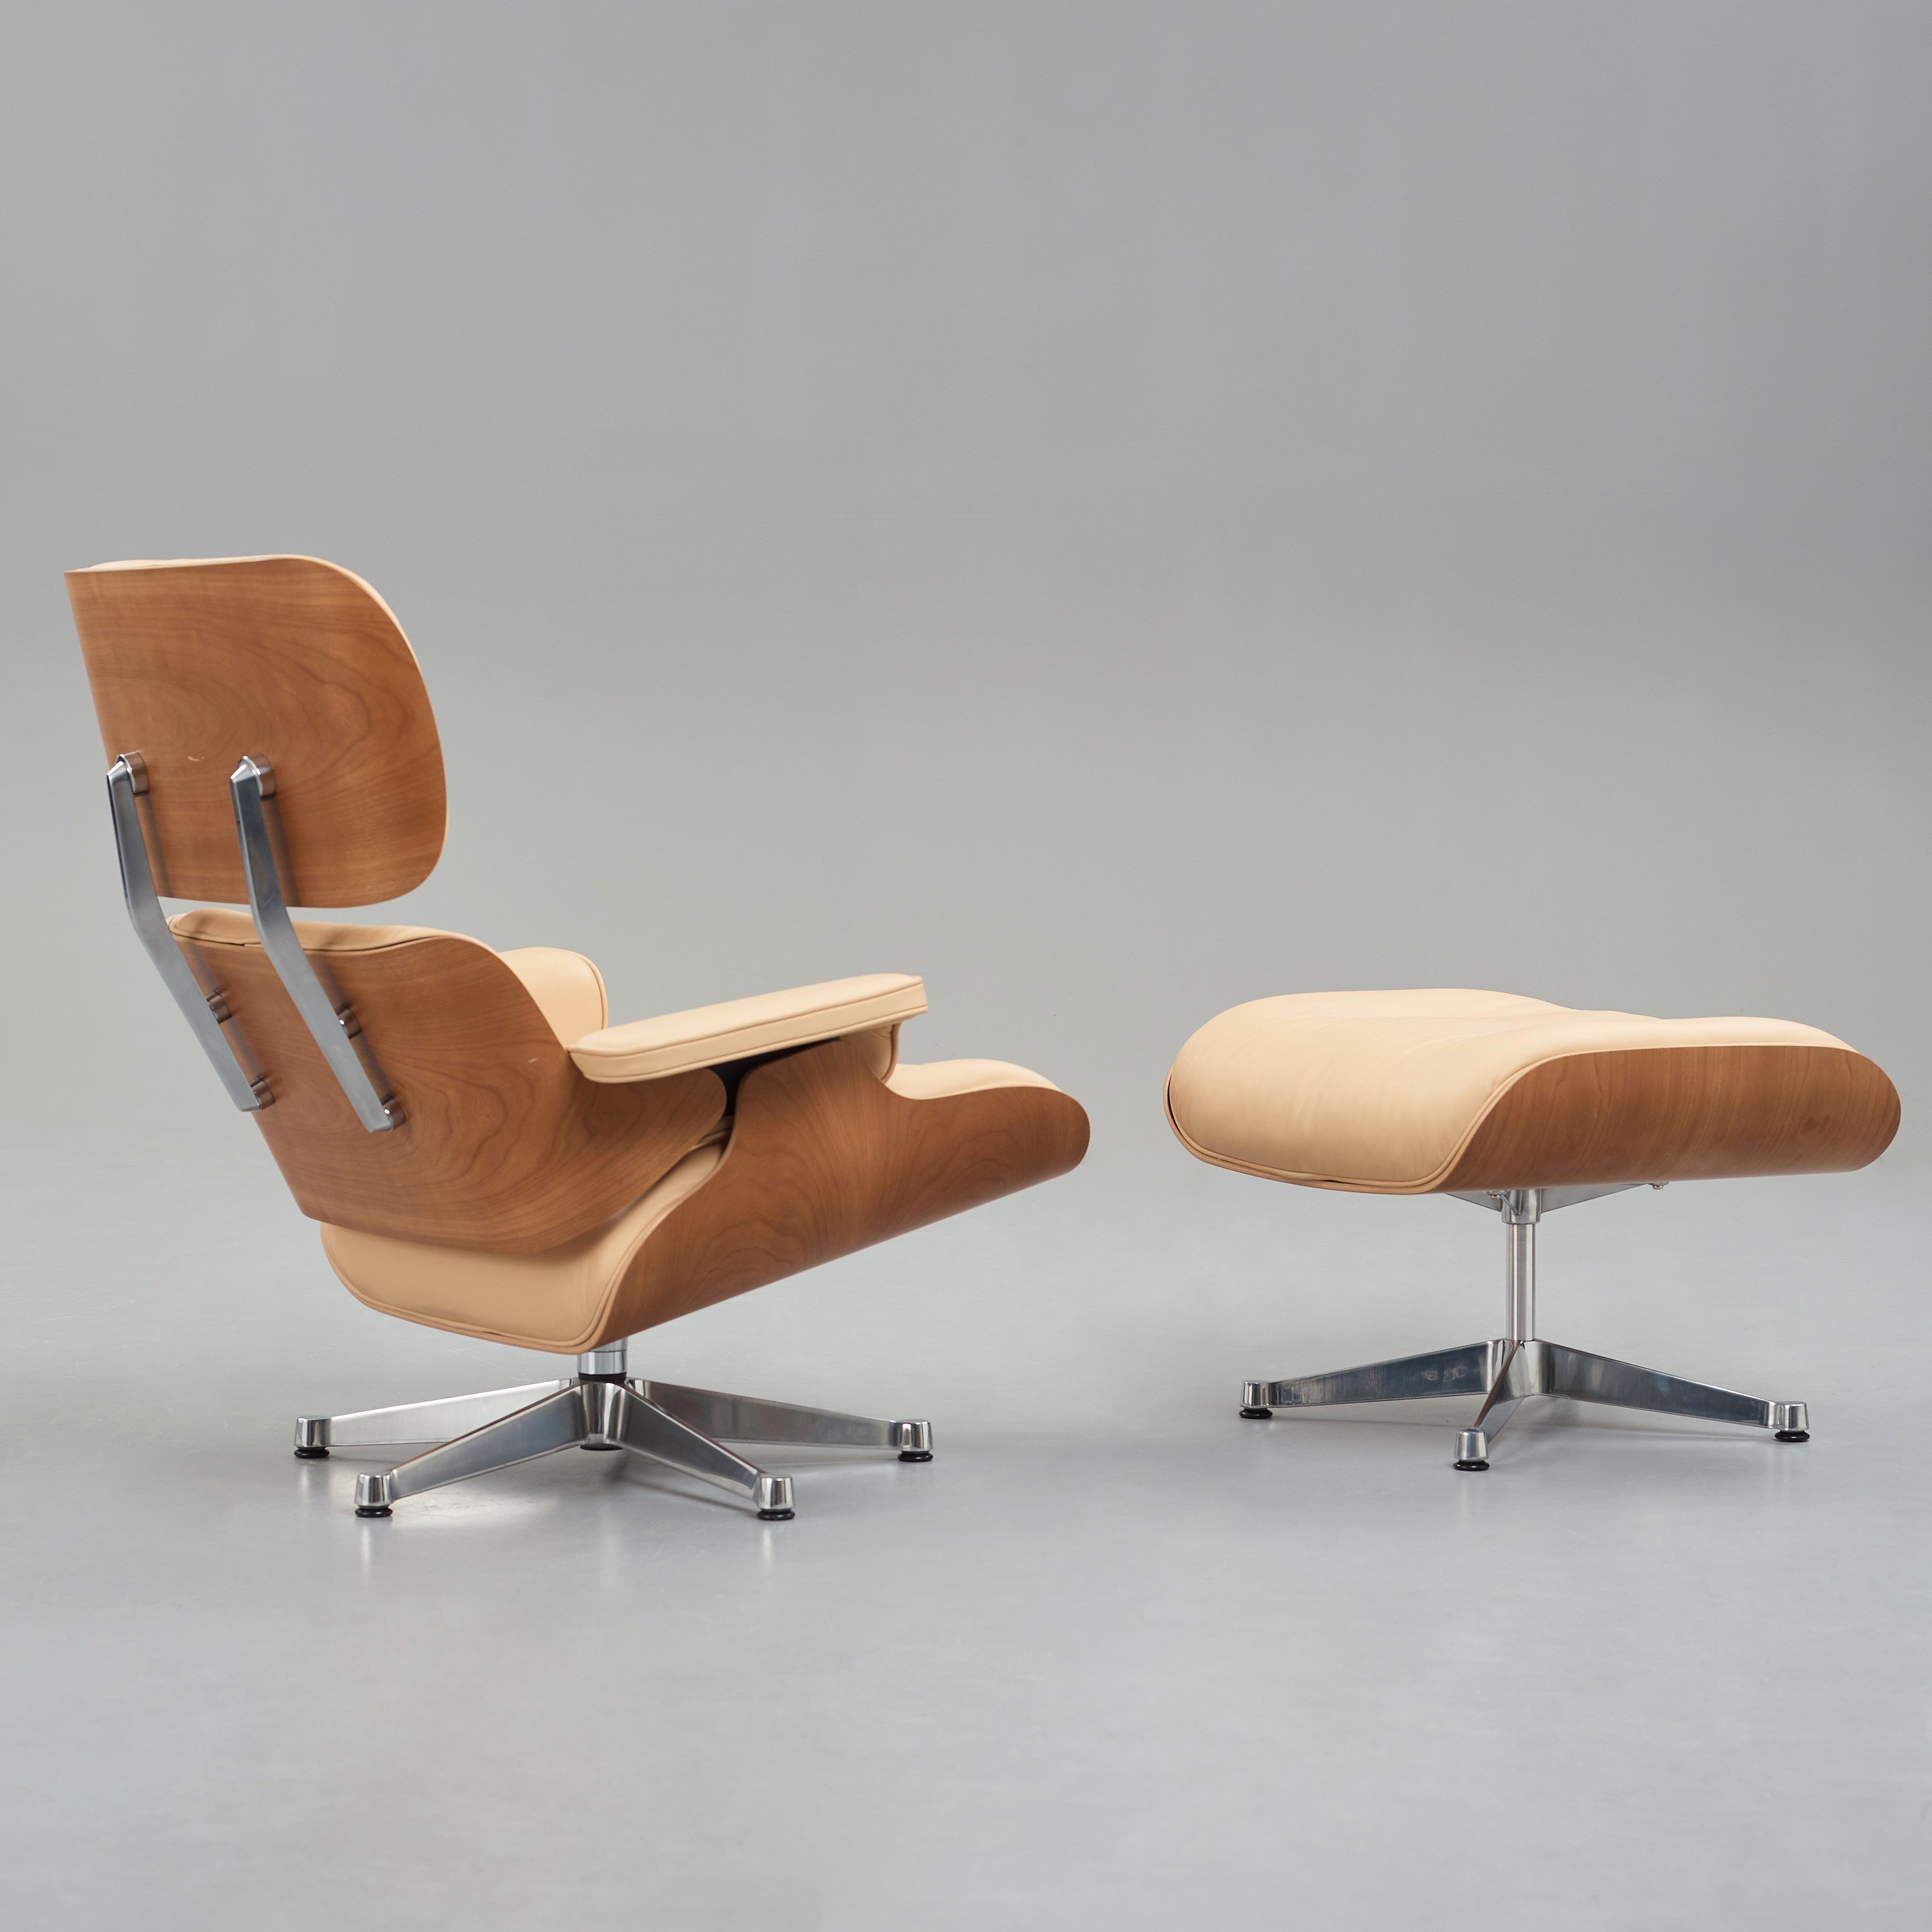 Miraculous Charles Ray Eames Lounge Chair With Ottoman For Vitra Short Links Chair Design For Home Short Linksinfo